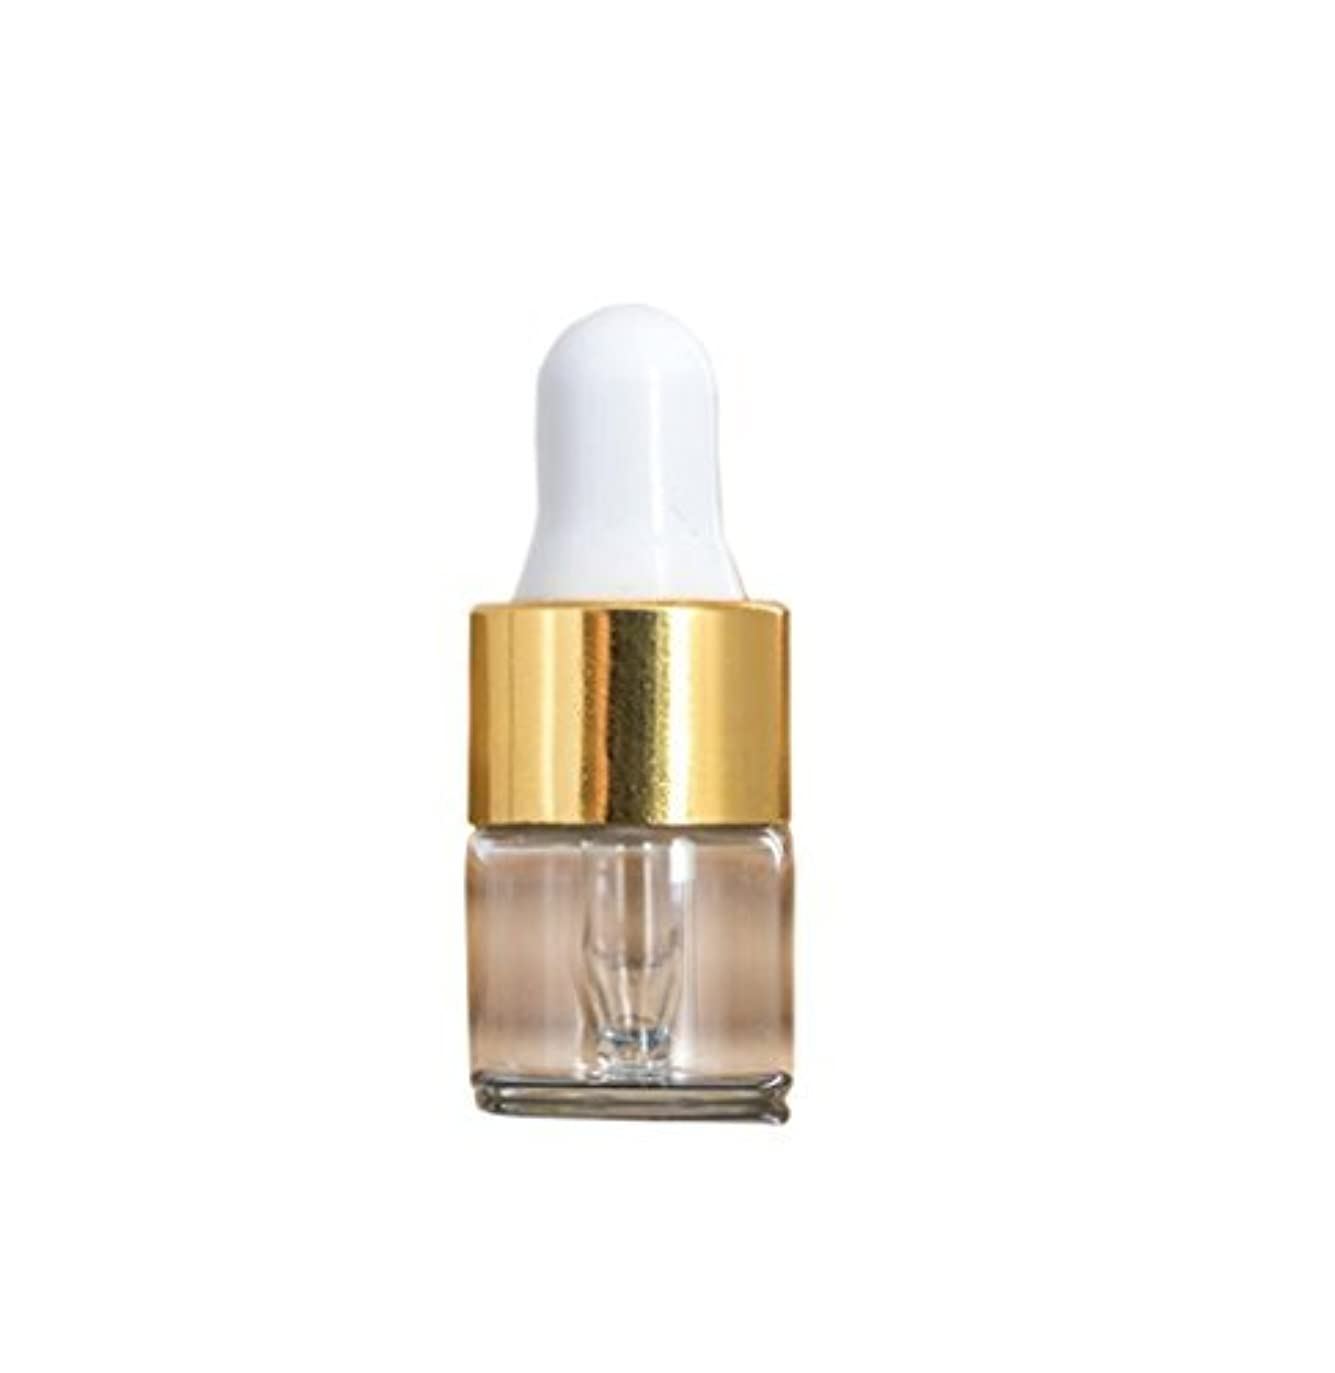 アライメント簿記係名目上のClear Glass Mini 1ml 15 Pcs Refillable Essential Oil Dropper Bottles Containers Cosmetic Sample Bottles Aromatherapy...